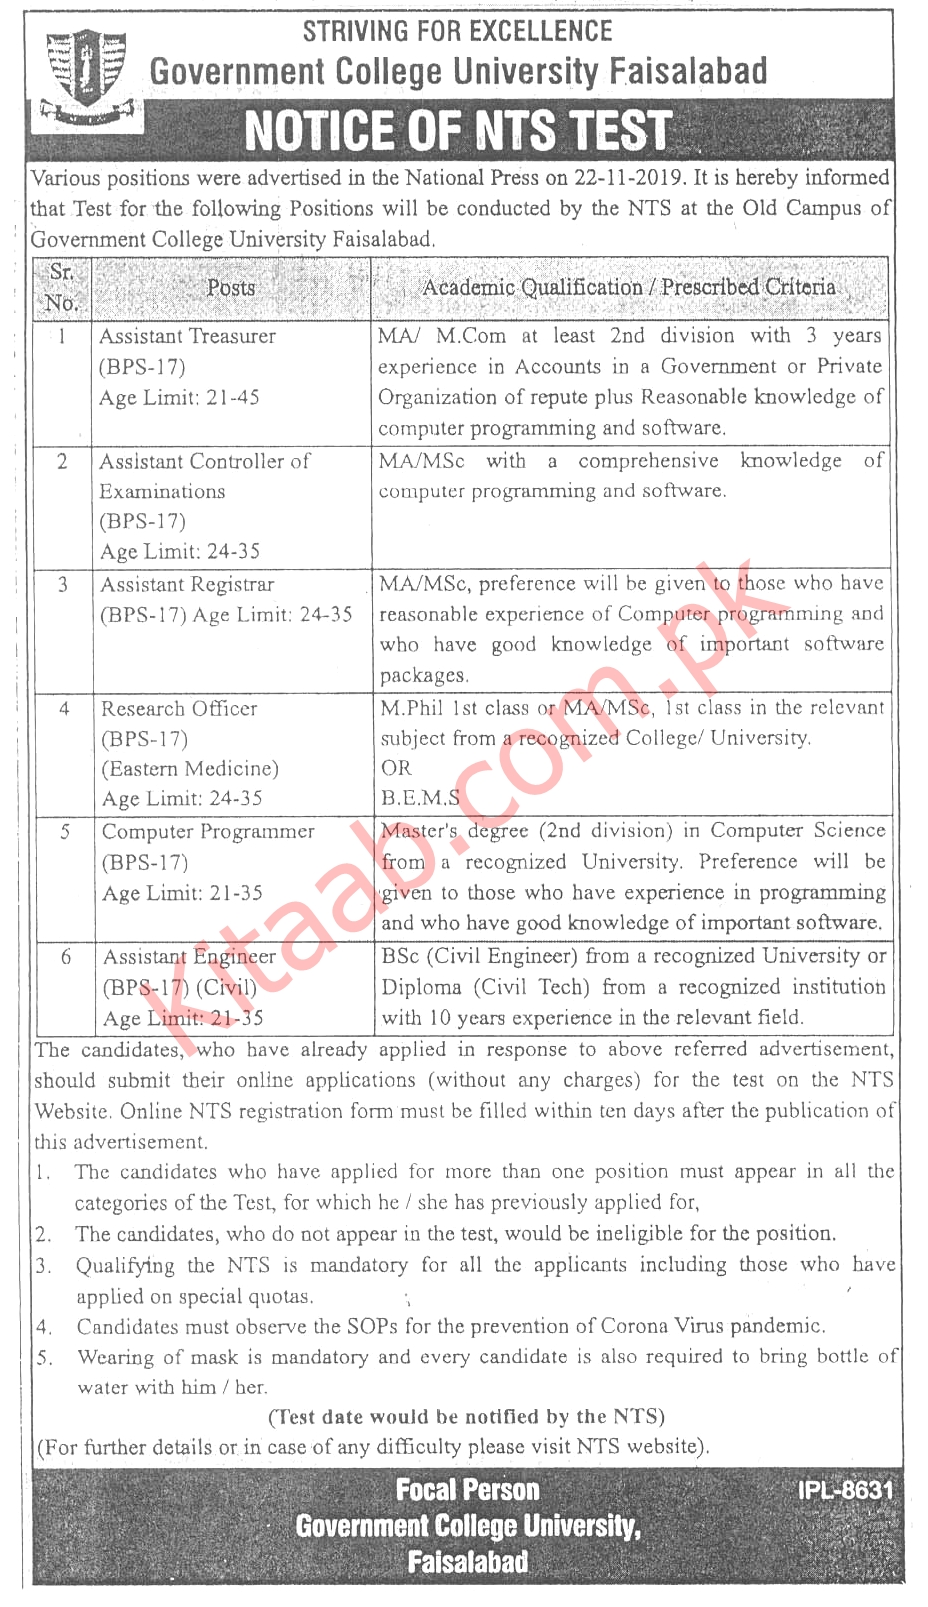 Government College University Faisalabad NTS Jobs 2021 Online Application Form Eligibility Criteria